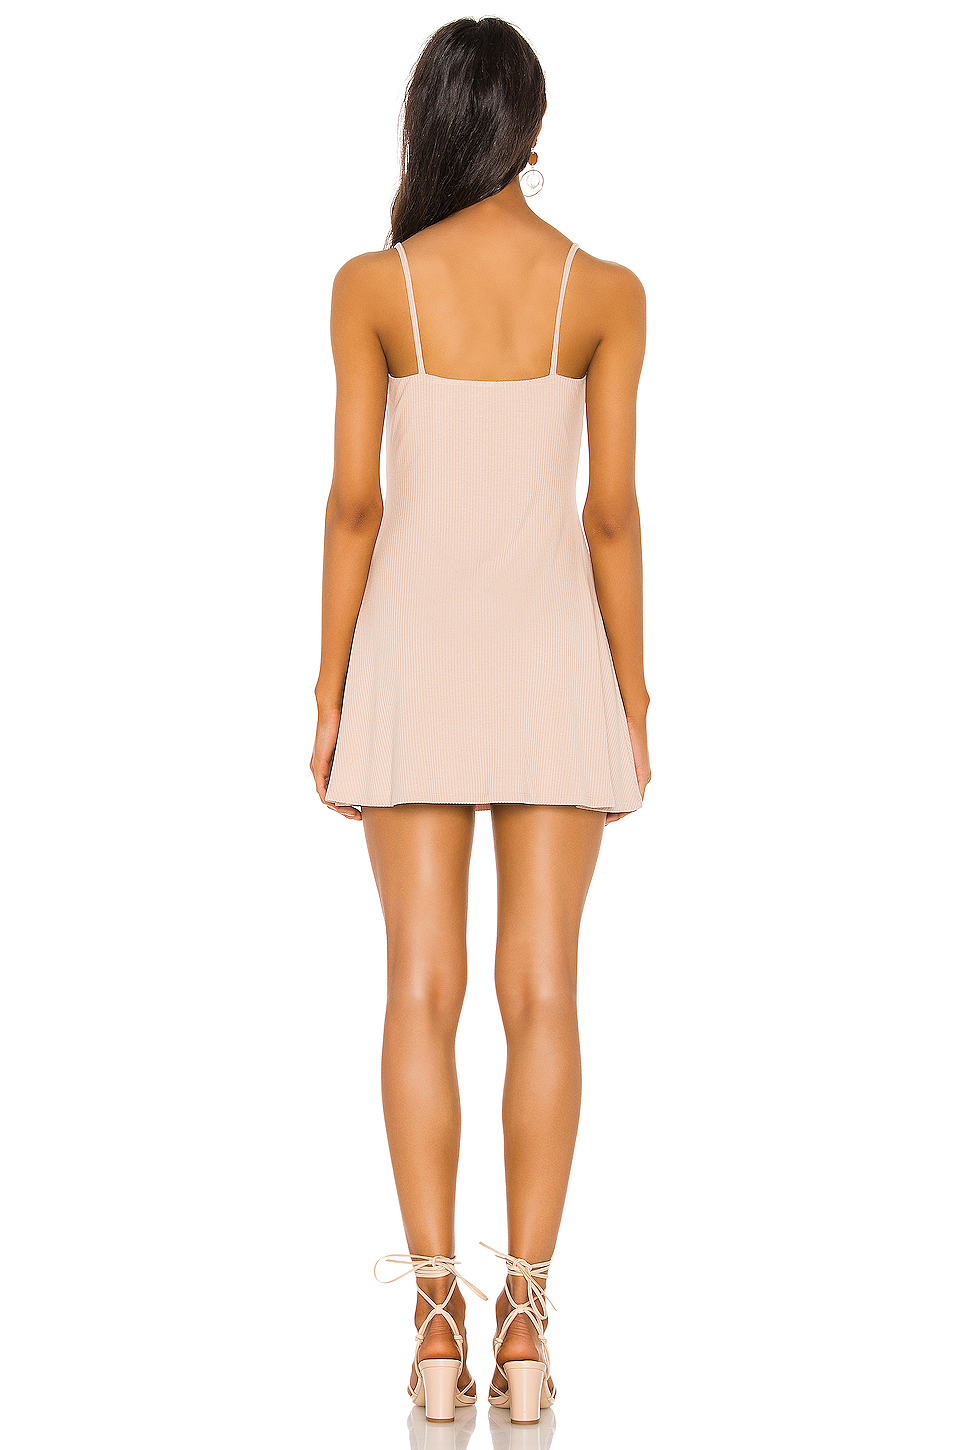 Privacy Please Dayton Mini Dress